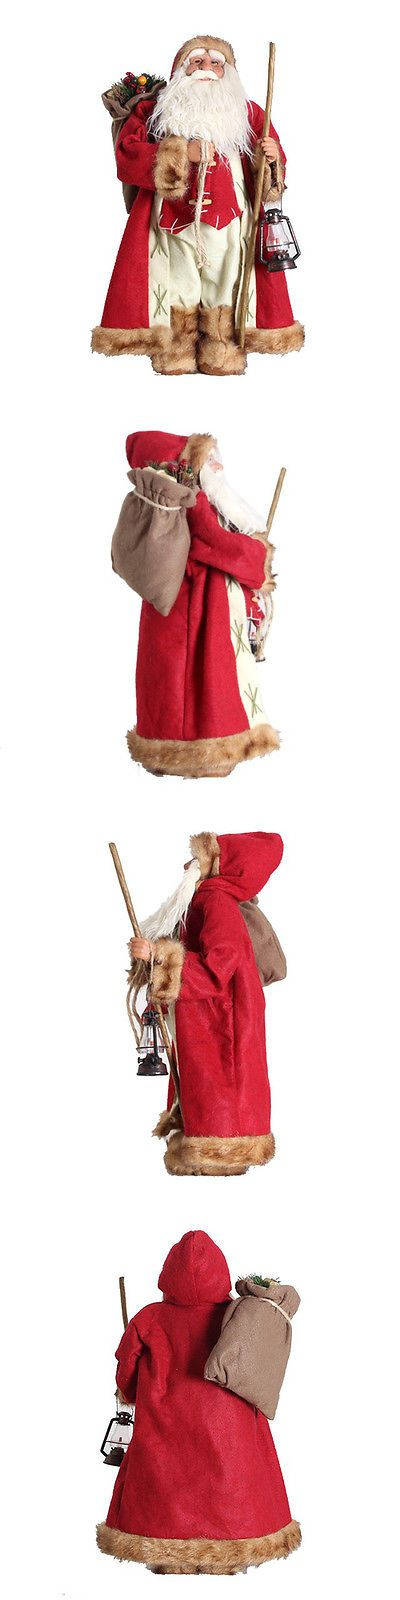 Other Weaving Supplies 3125: Delicate Christmas Crafts Santa Figurine Santa Claus Collection -> BUY IT NOW ONLY: $68.99 on eBay!